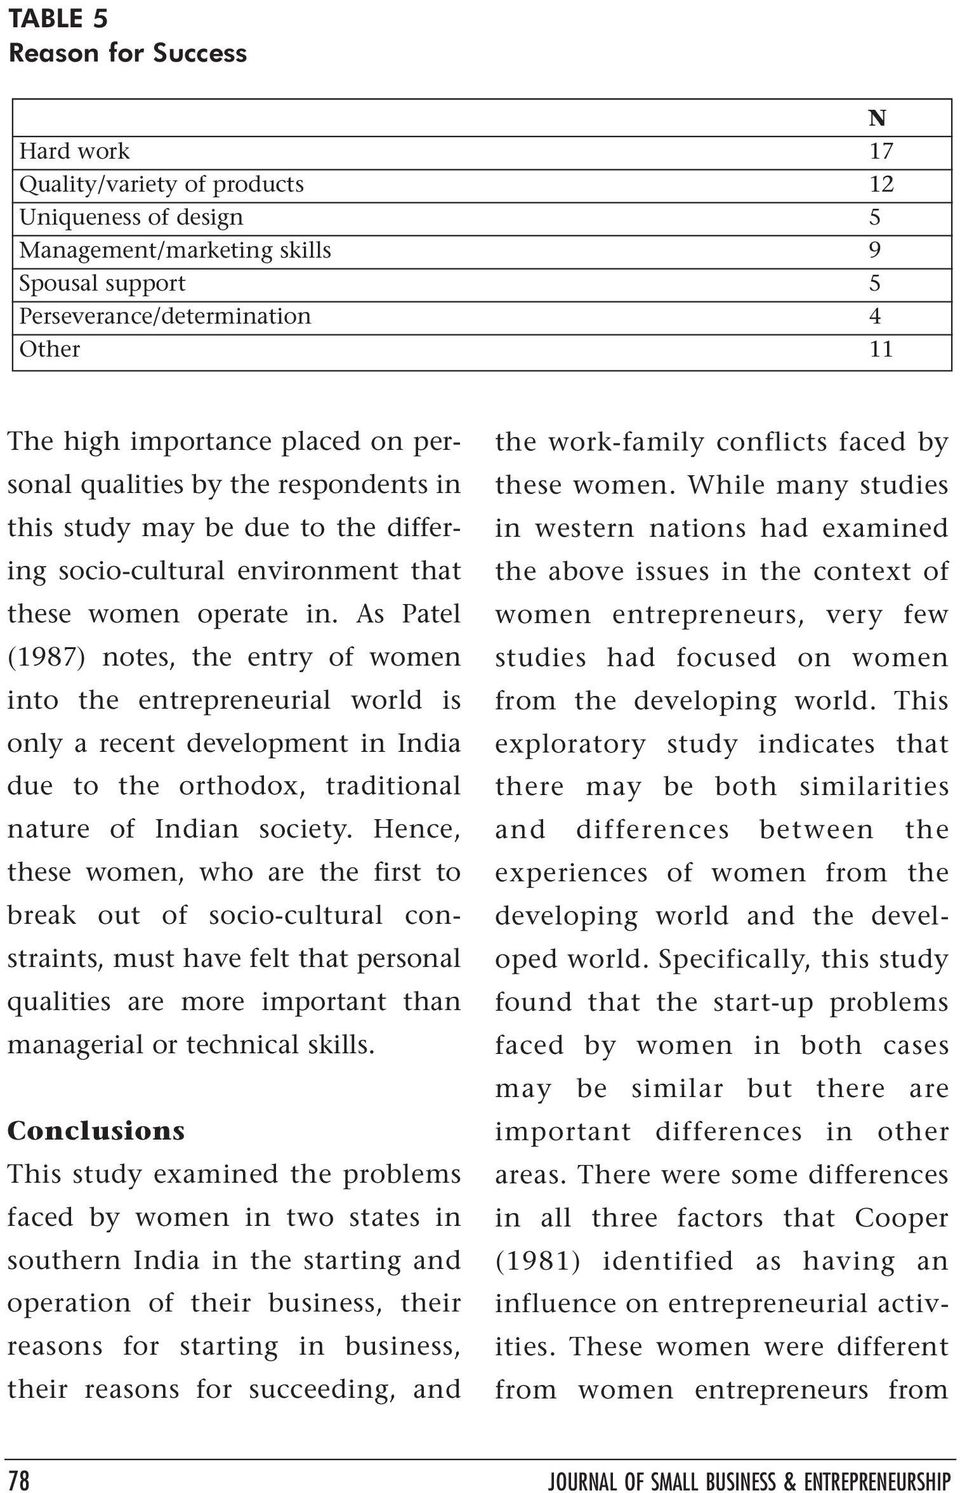 As Patel (1987) notes, the entry of women into the entrepreneurial world is only a recent development in India due to the orthodox, traditional nature of Indian society.